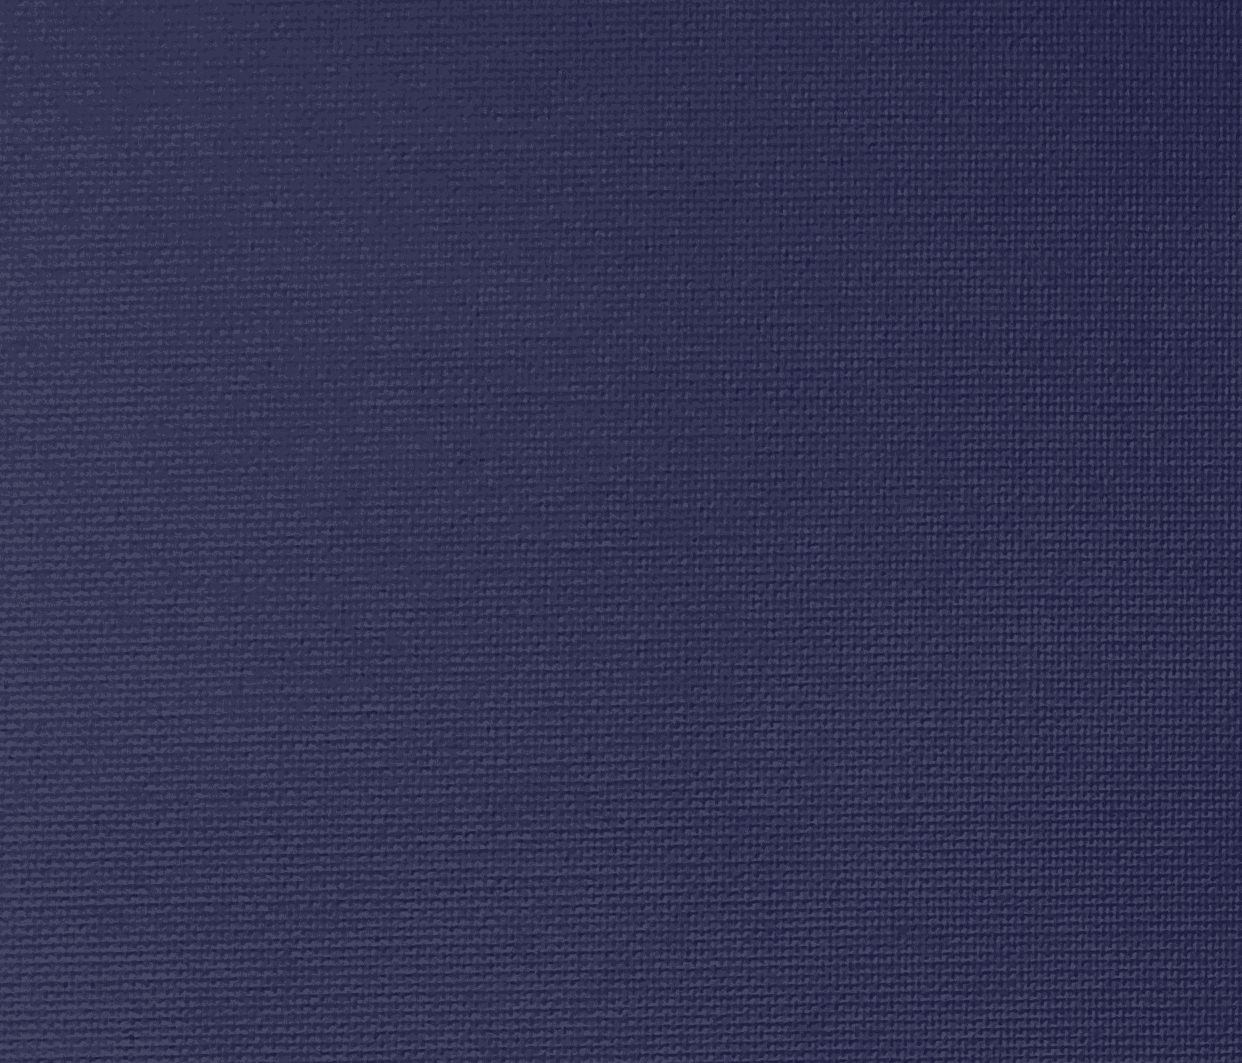 Eden Oxford Blue Blackout Blind Fabric